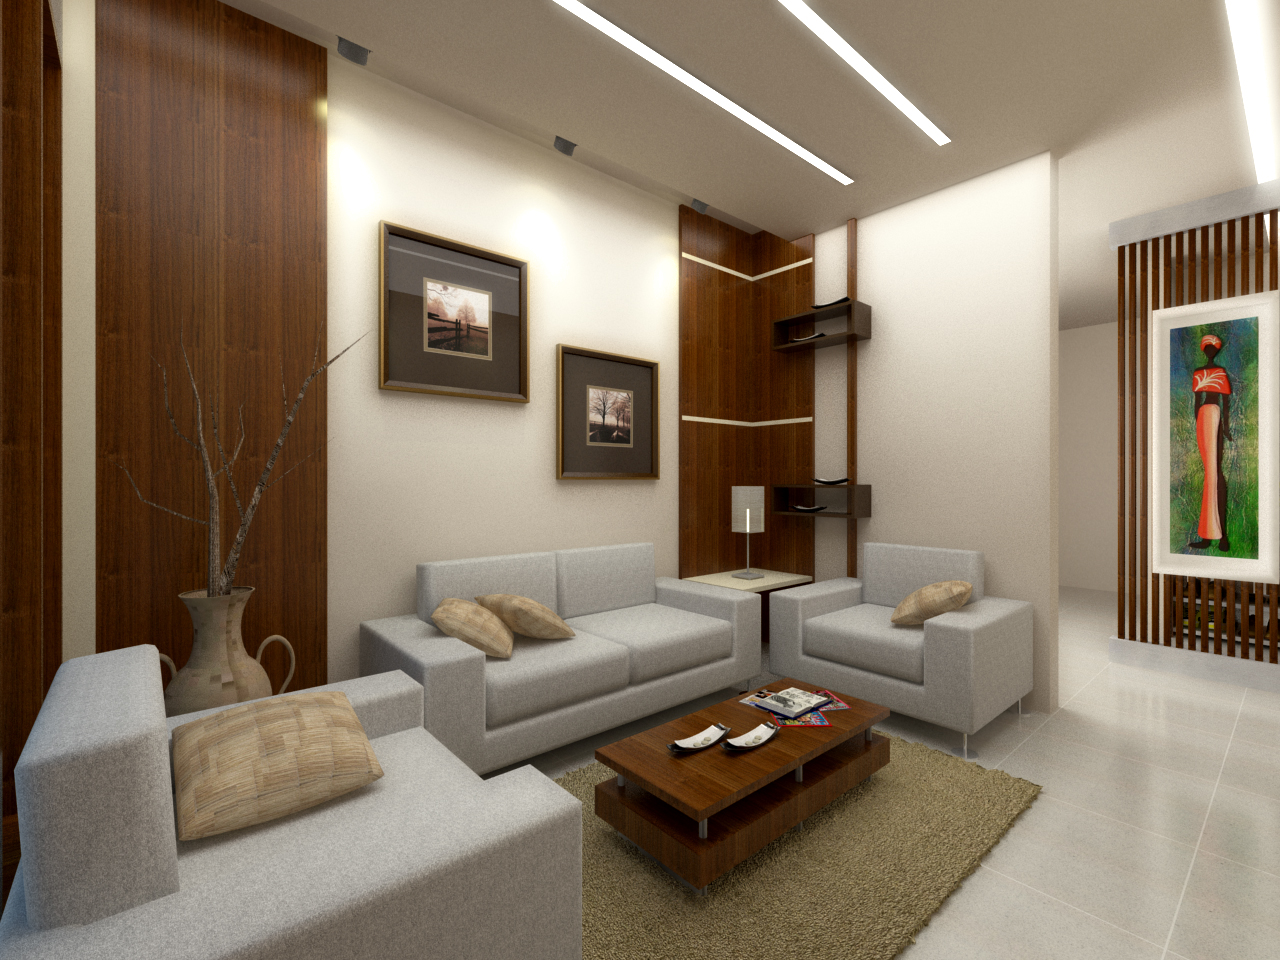 Interior project interior house in lampung past design for Design apartment yang simple